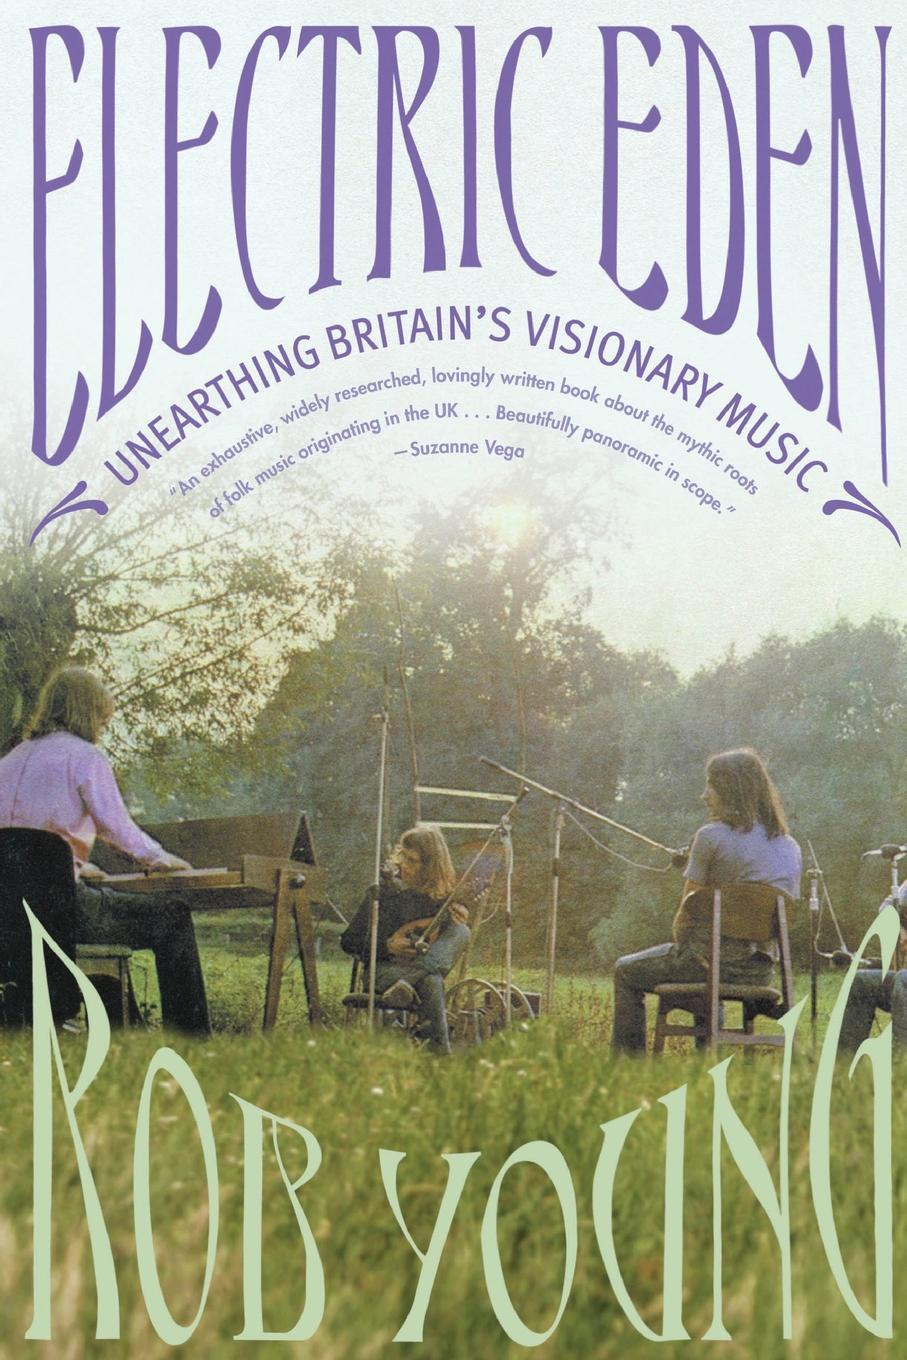 Rob Young Electric Eden. Unearthing Britain's Visionary Music eden emily miss eden s letters